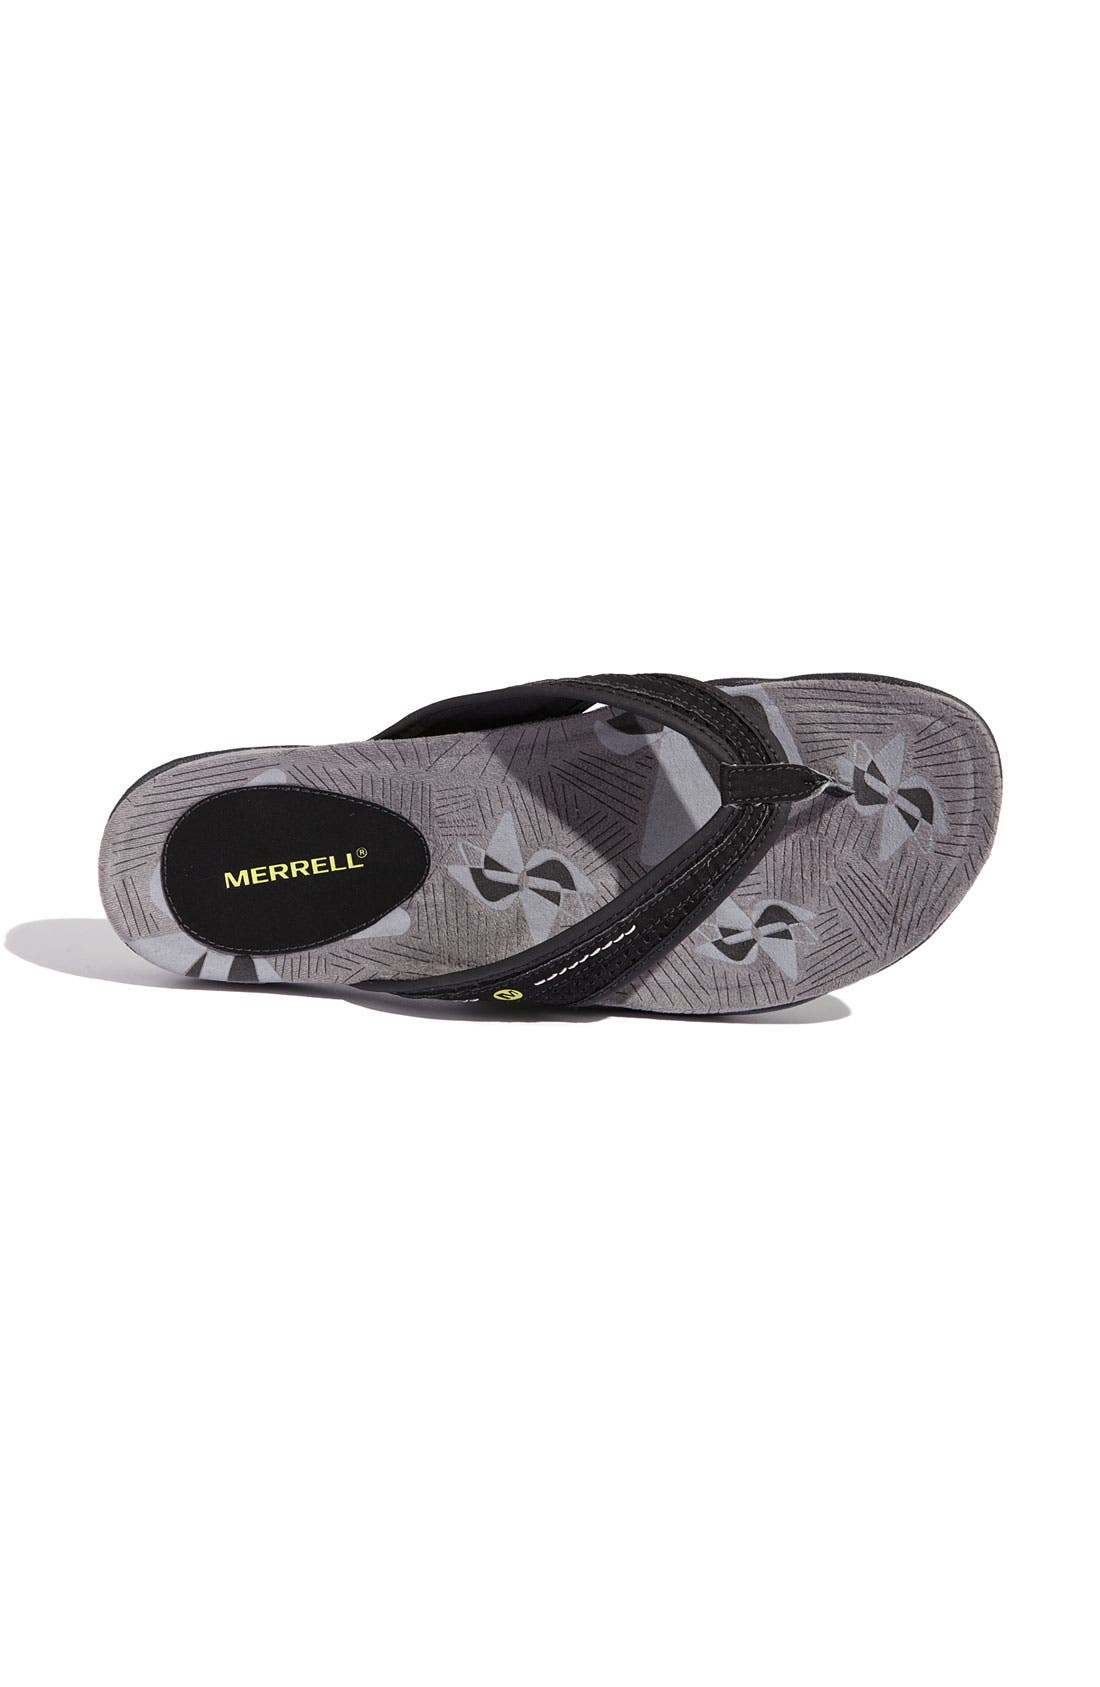 Alternate Image 3  - Merrell 'Lorelei' Sandal